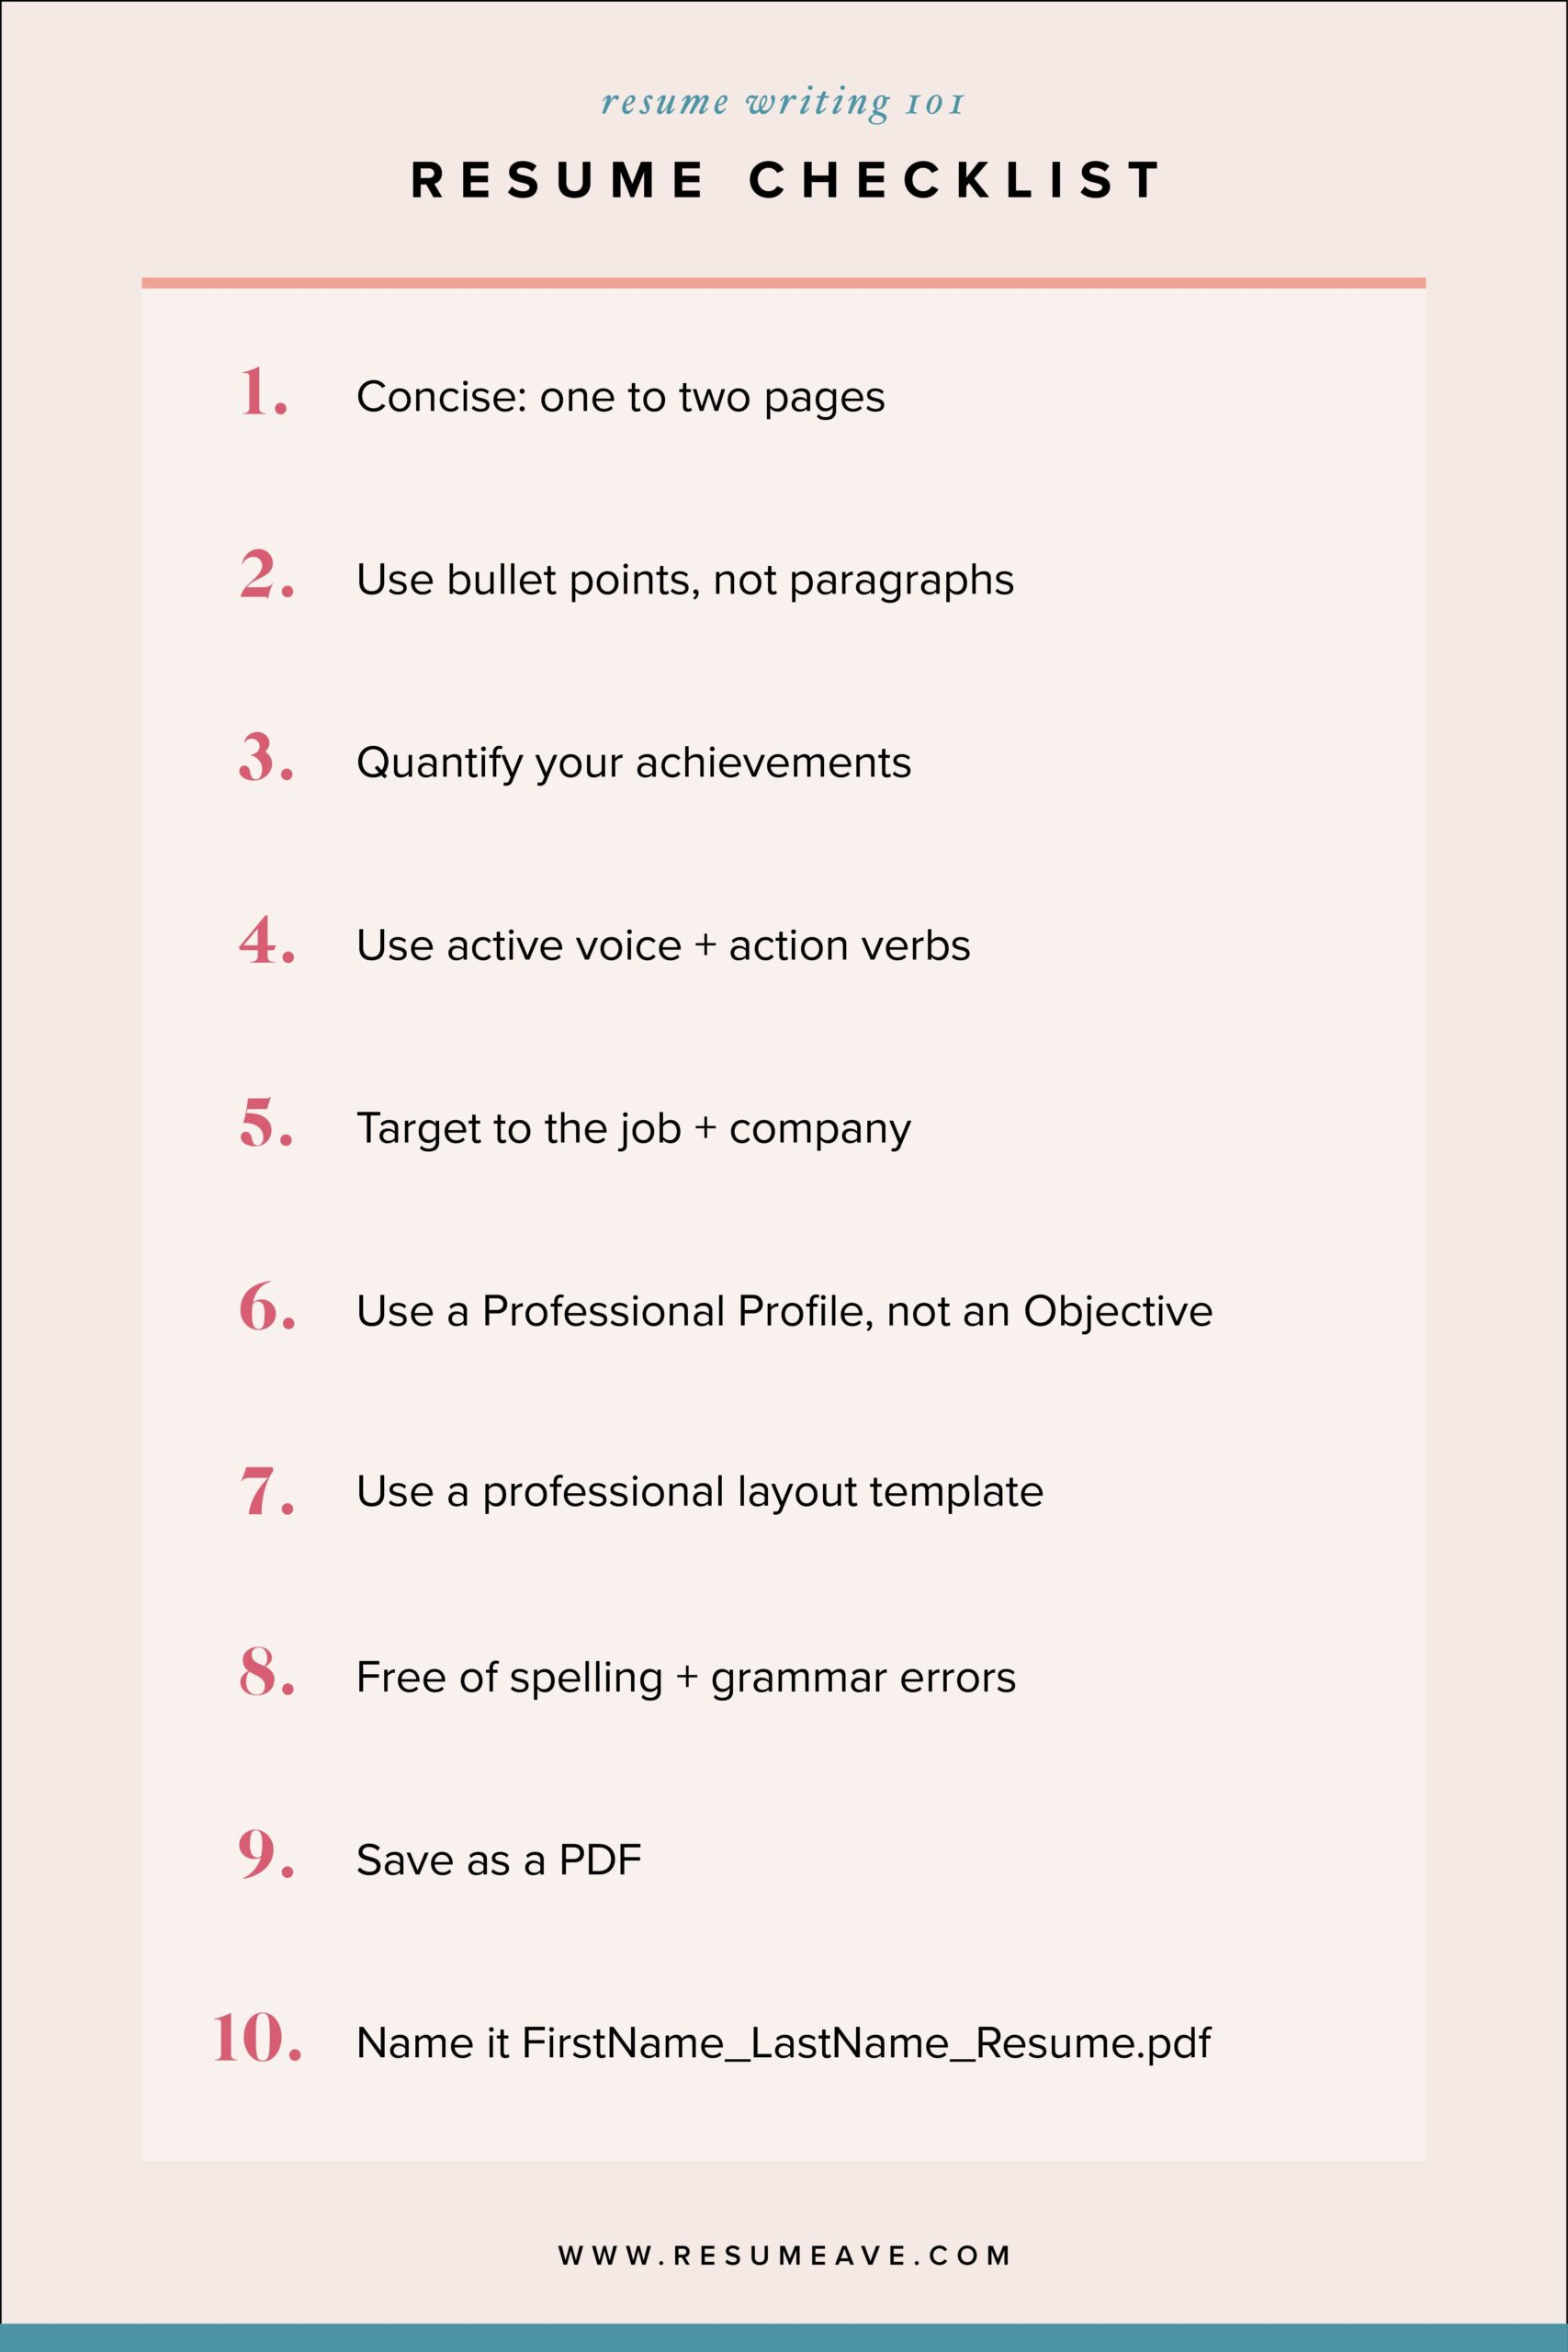 top resume writing tips checklist good personal qualities for strengths professional Resume Resume Writing Checklist